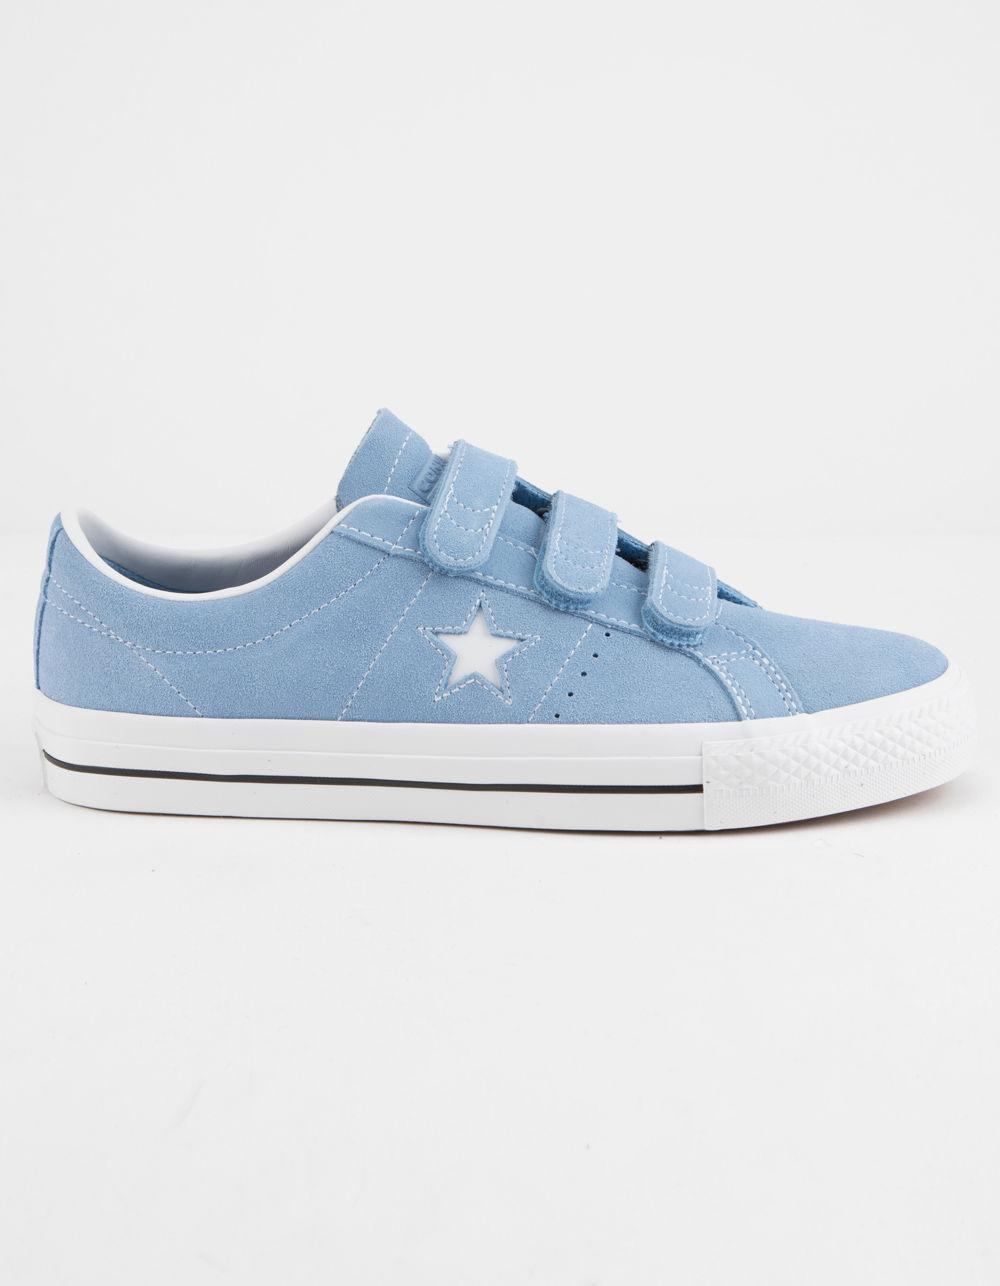 9c53fa913340a2 Lyst - Converse One Star Pro 3v Ox Light Blue   White Shoes in Blue ...